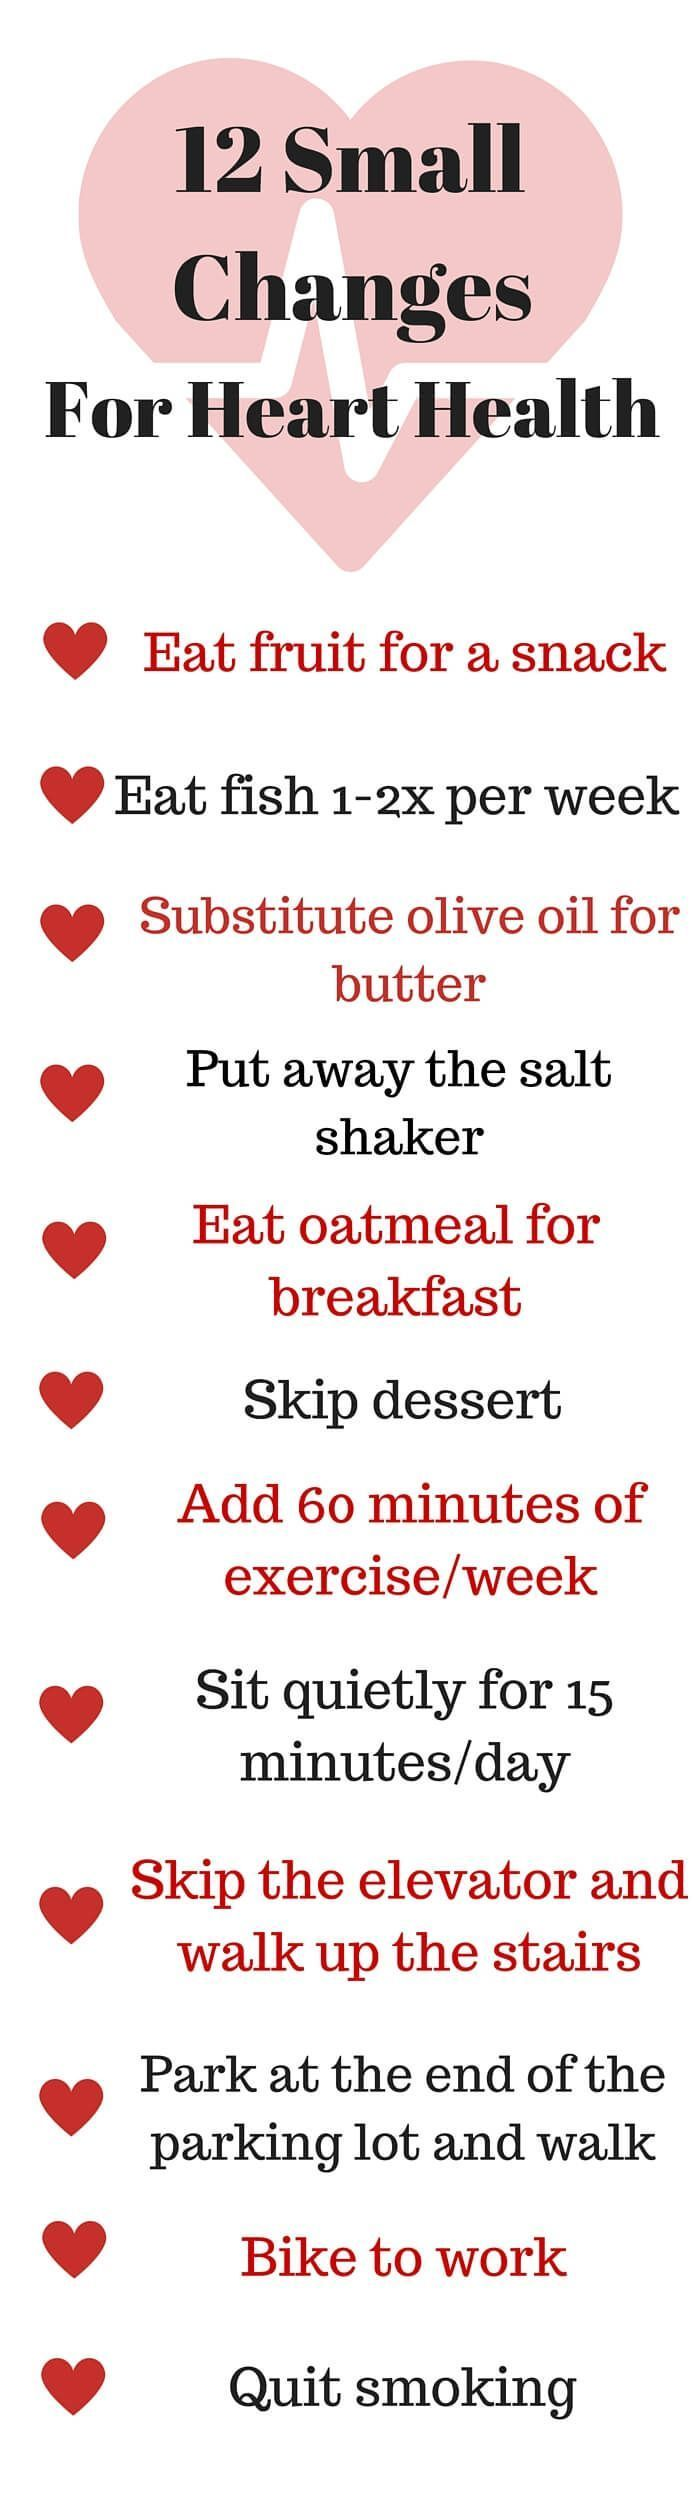 12 Small Changes For Heart Health - small changes can add up to make a big difference for heart failure